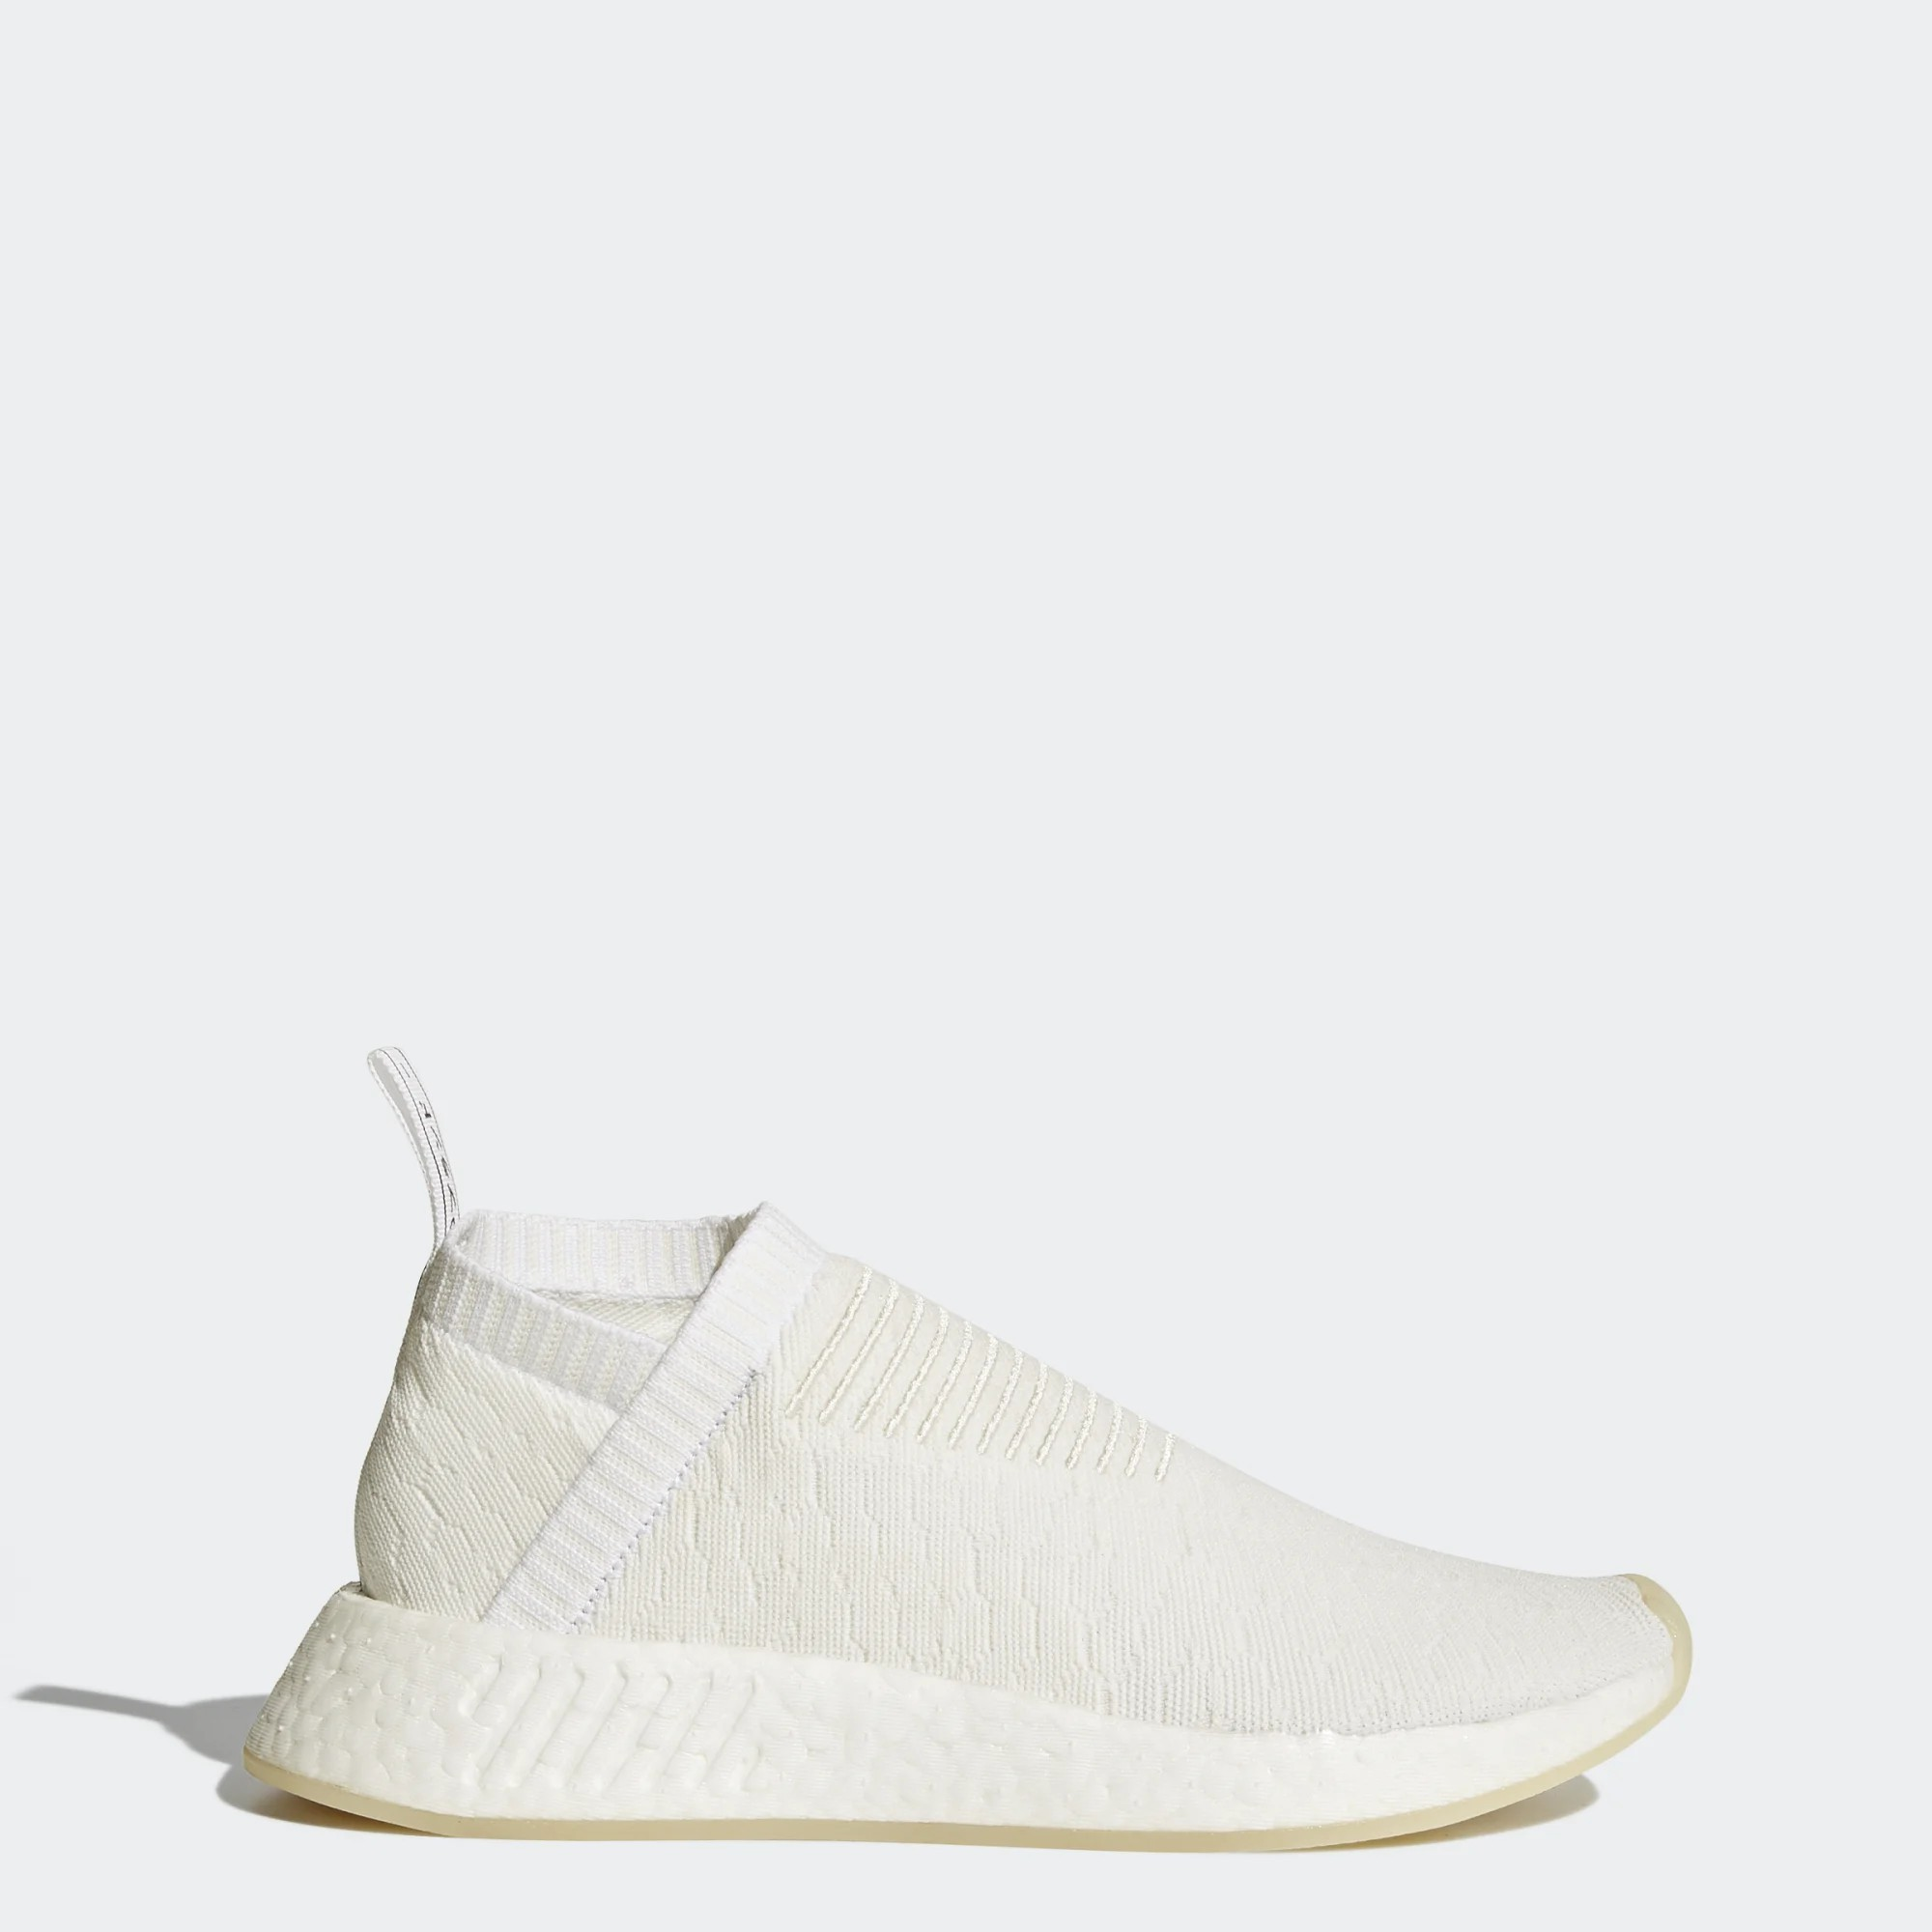 Wmns NMD_CS2 Primeknit 'White' adidas BY3018